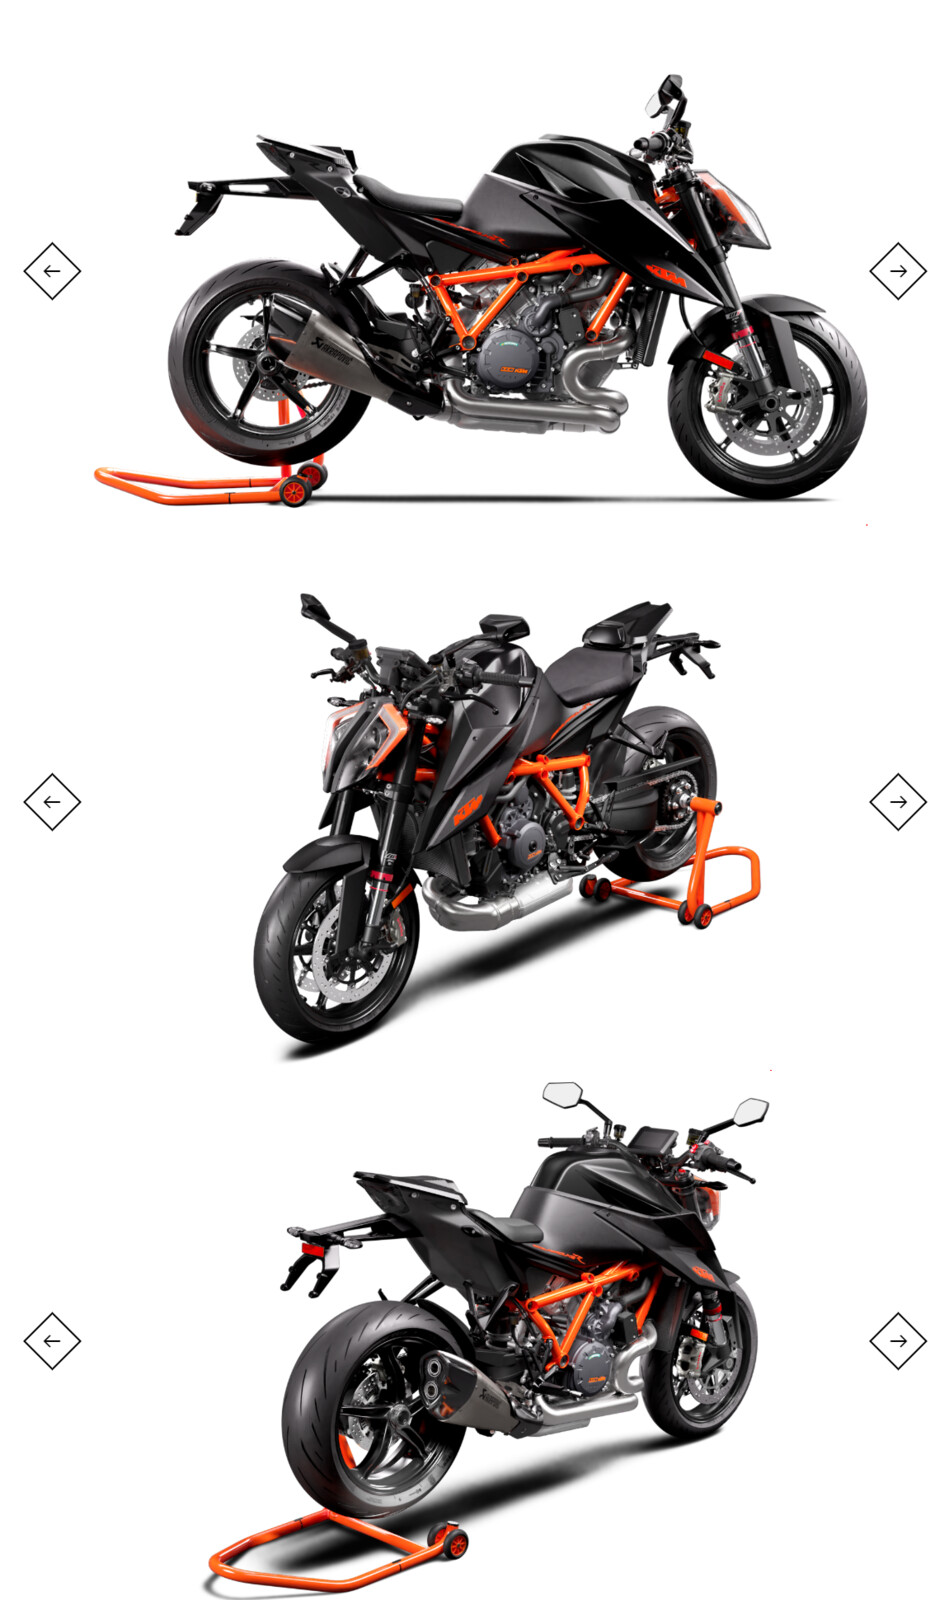 screenshots of the 2020 KTM 1290 SUPER DUKE R configurator